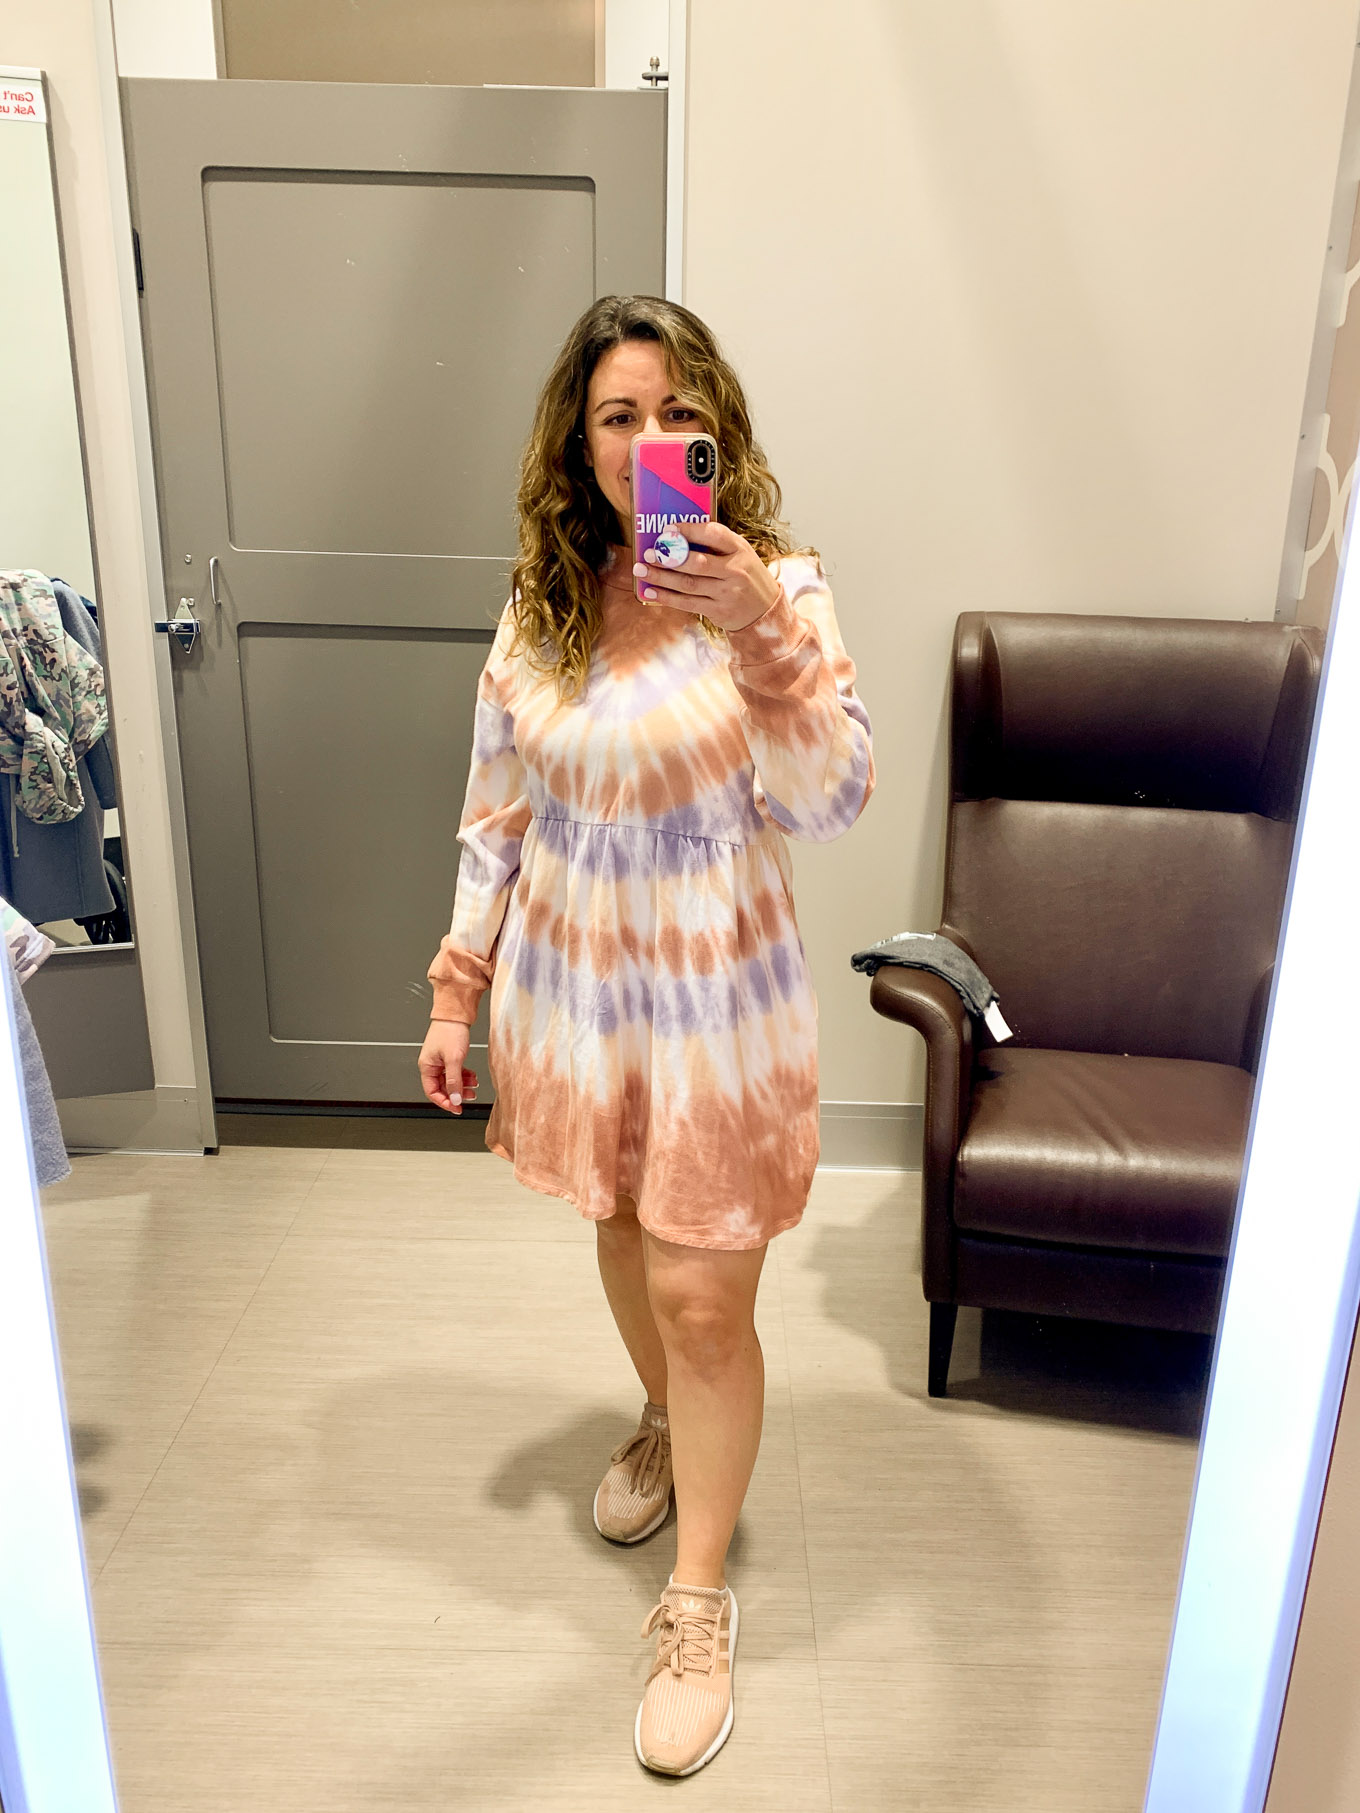 Target Try On by popular Chicago fashion blog, Glass of Glam: image of a woman wearing Target Women's Tie-Dye Long Sleeve Mock Turtleneck Knit Dress and adidas QT Racer Women's Sneakers.